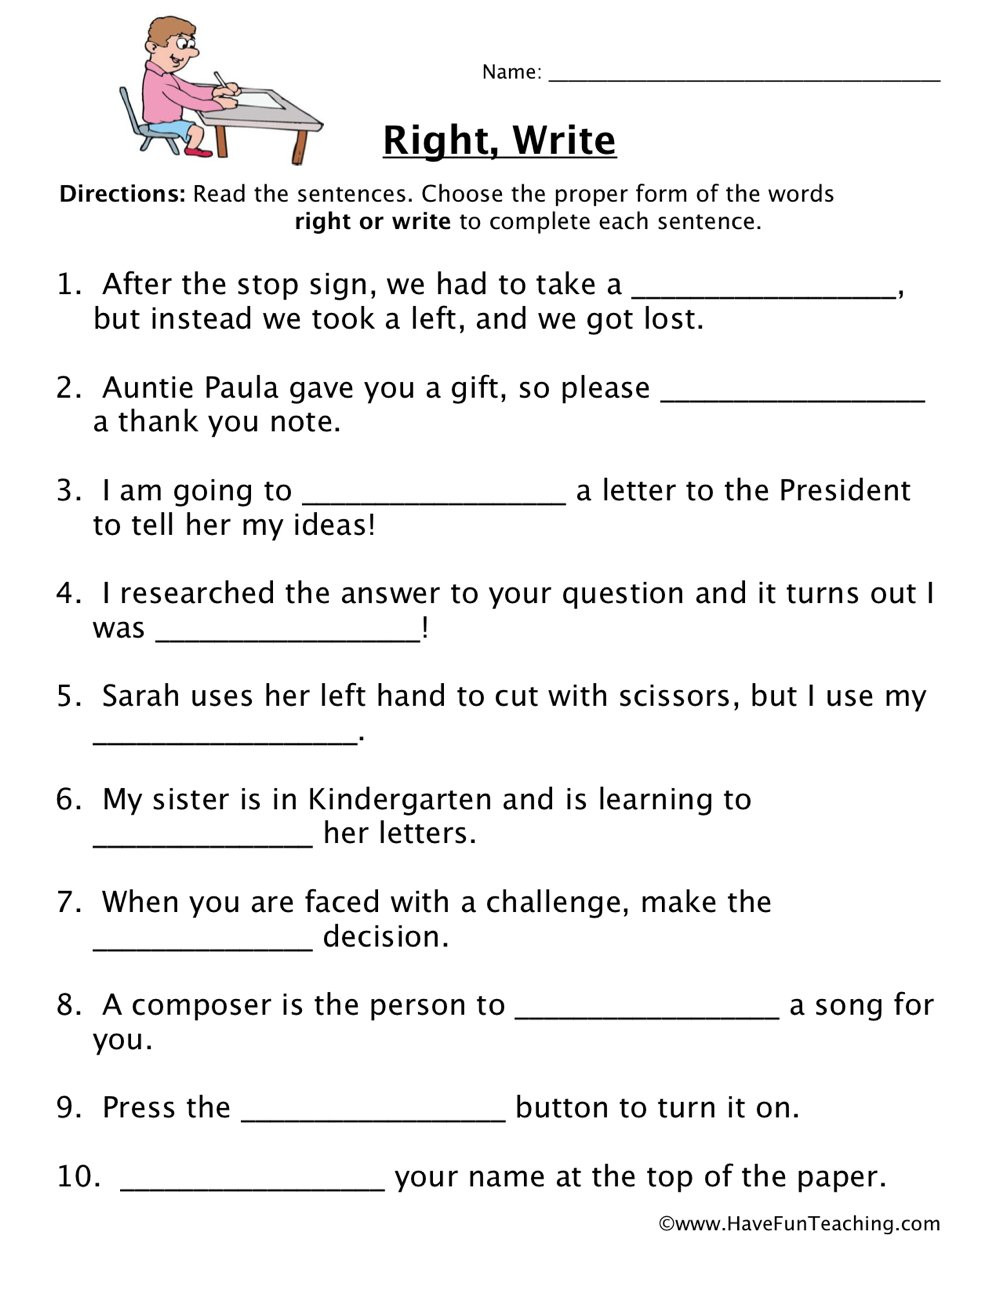 Homophones Worksheets 4th Grade Right Write Homophones Worksheet